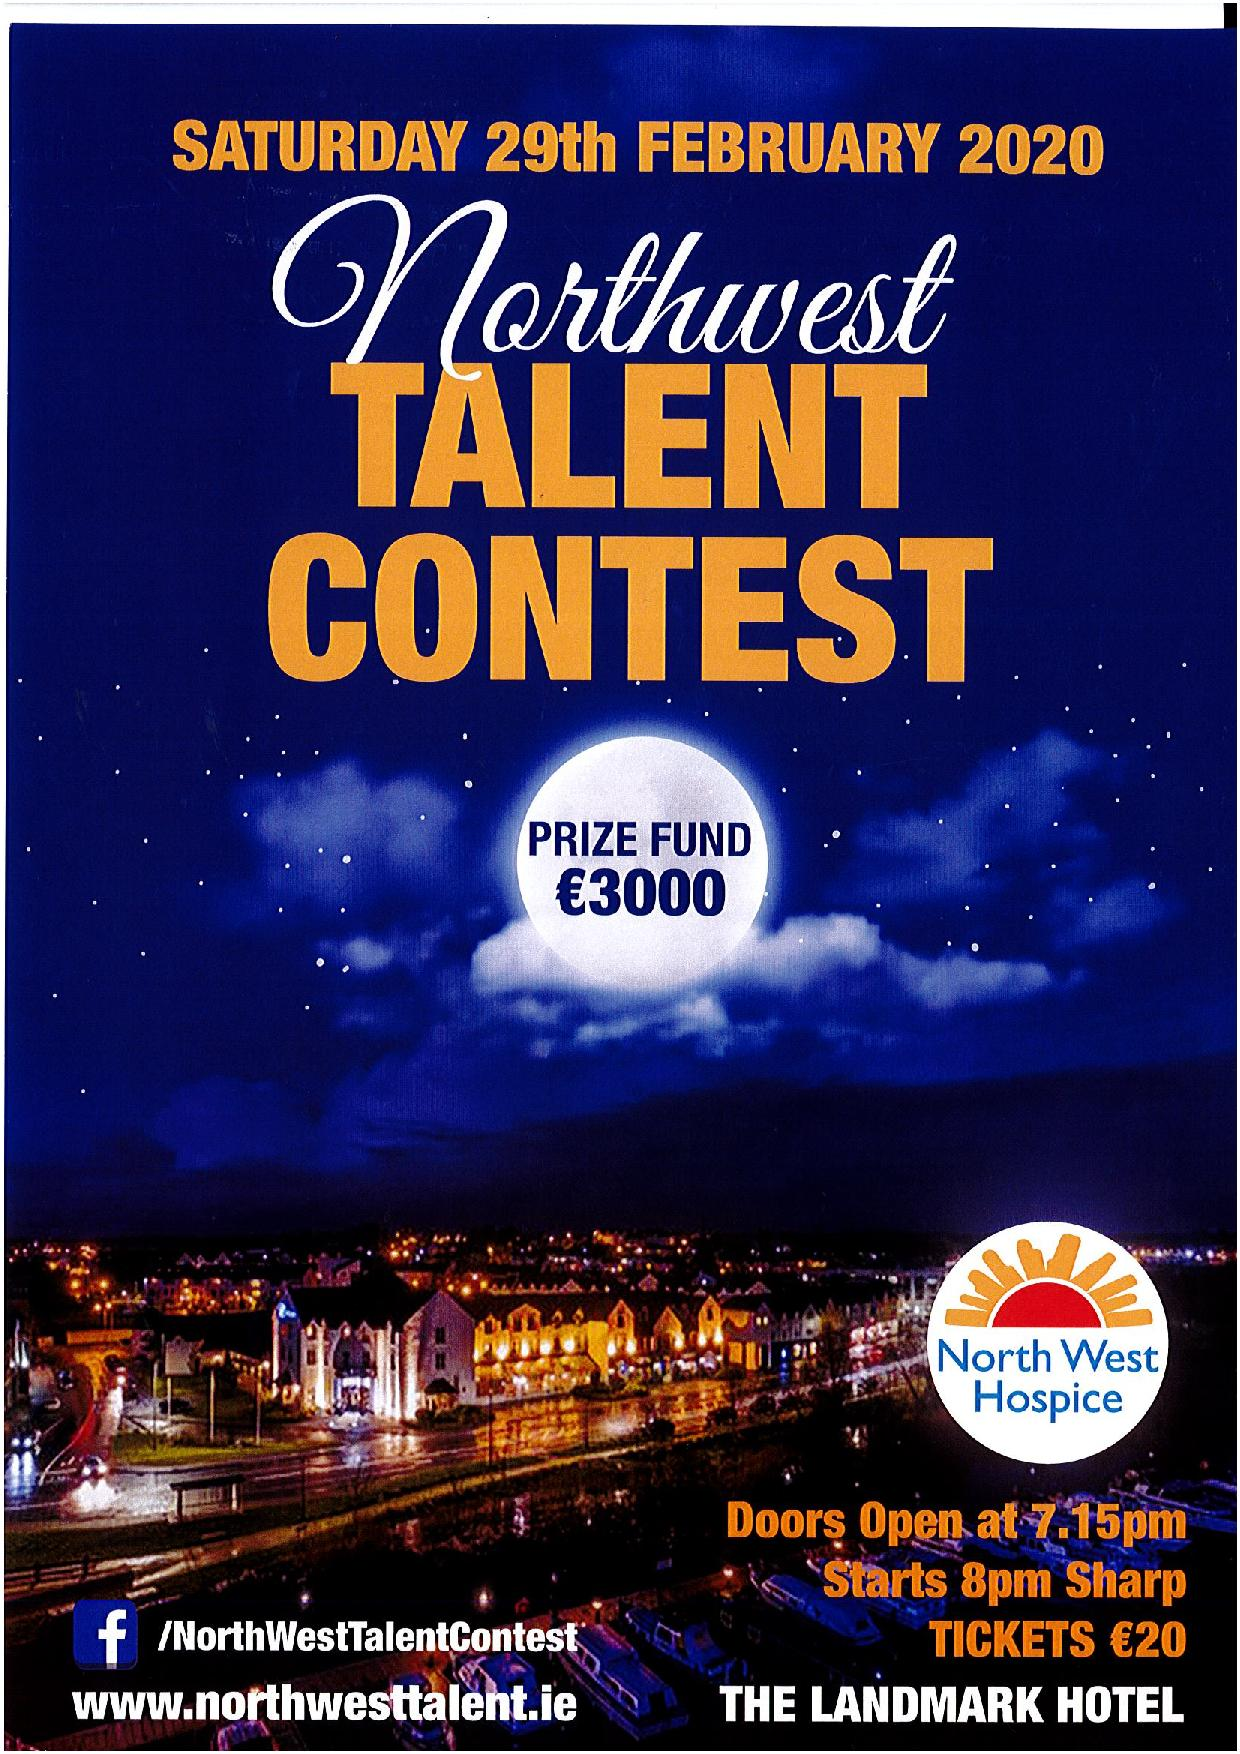 The North West Talent Contest